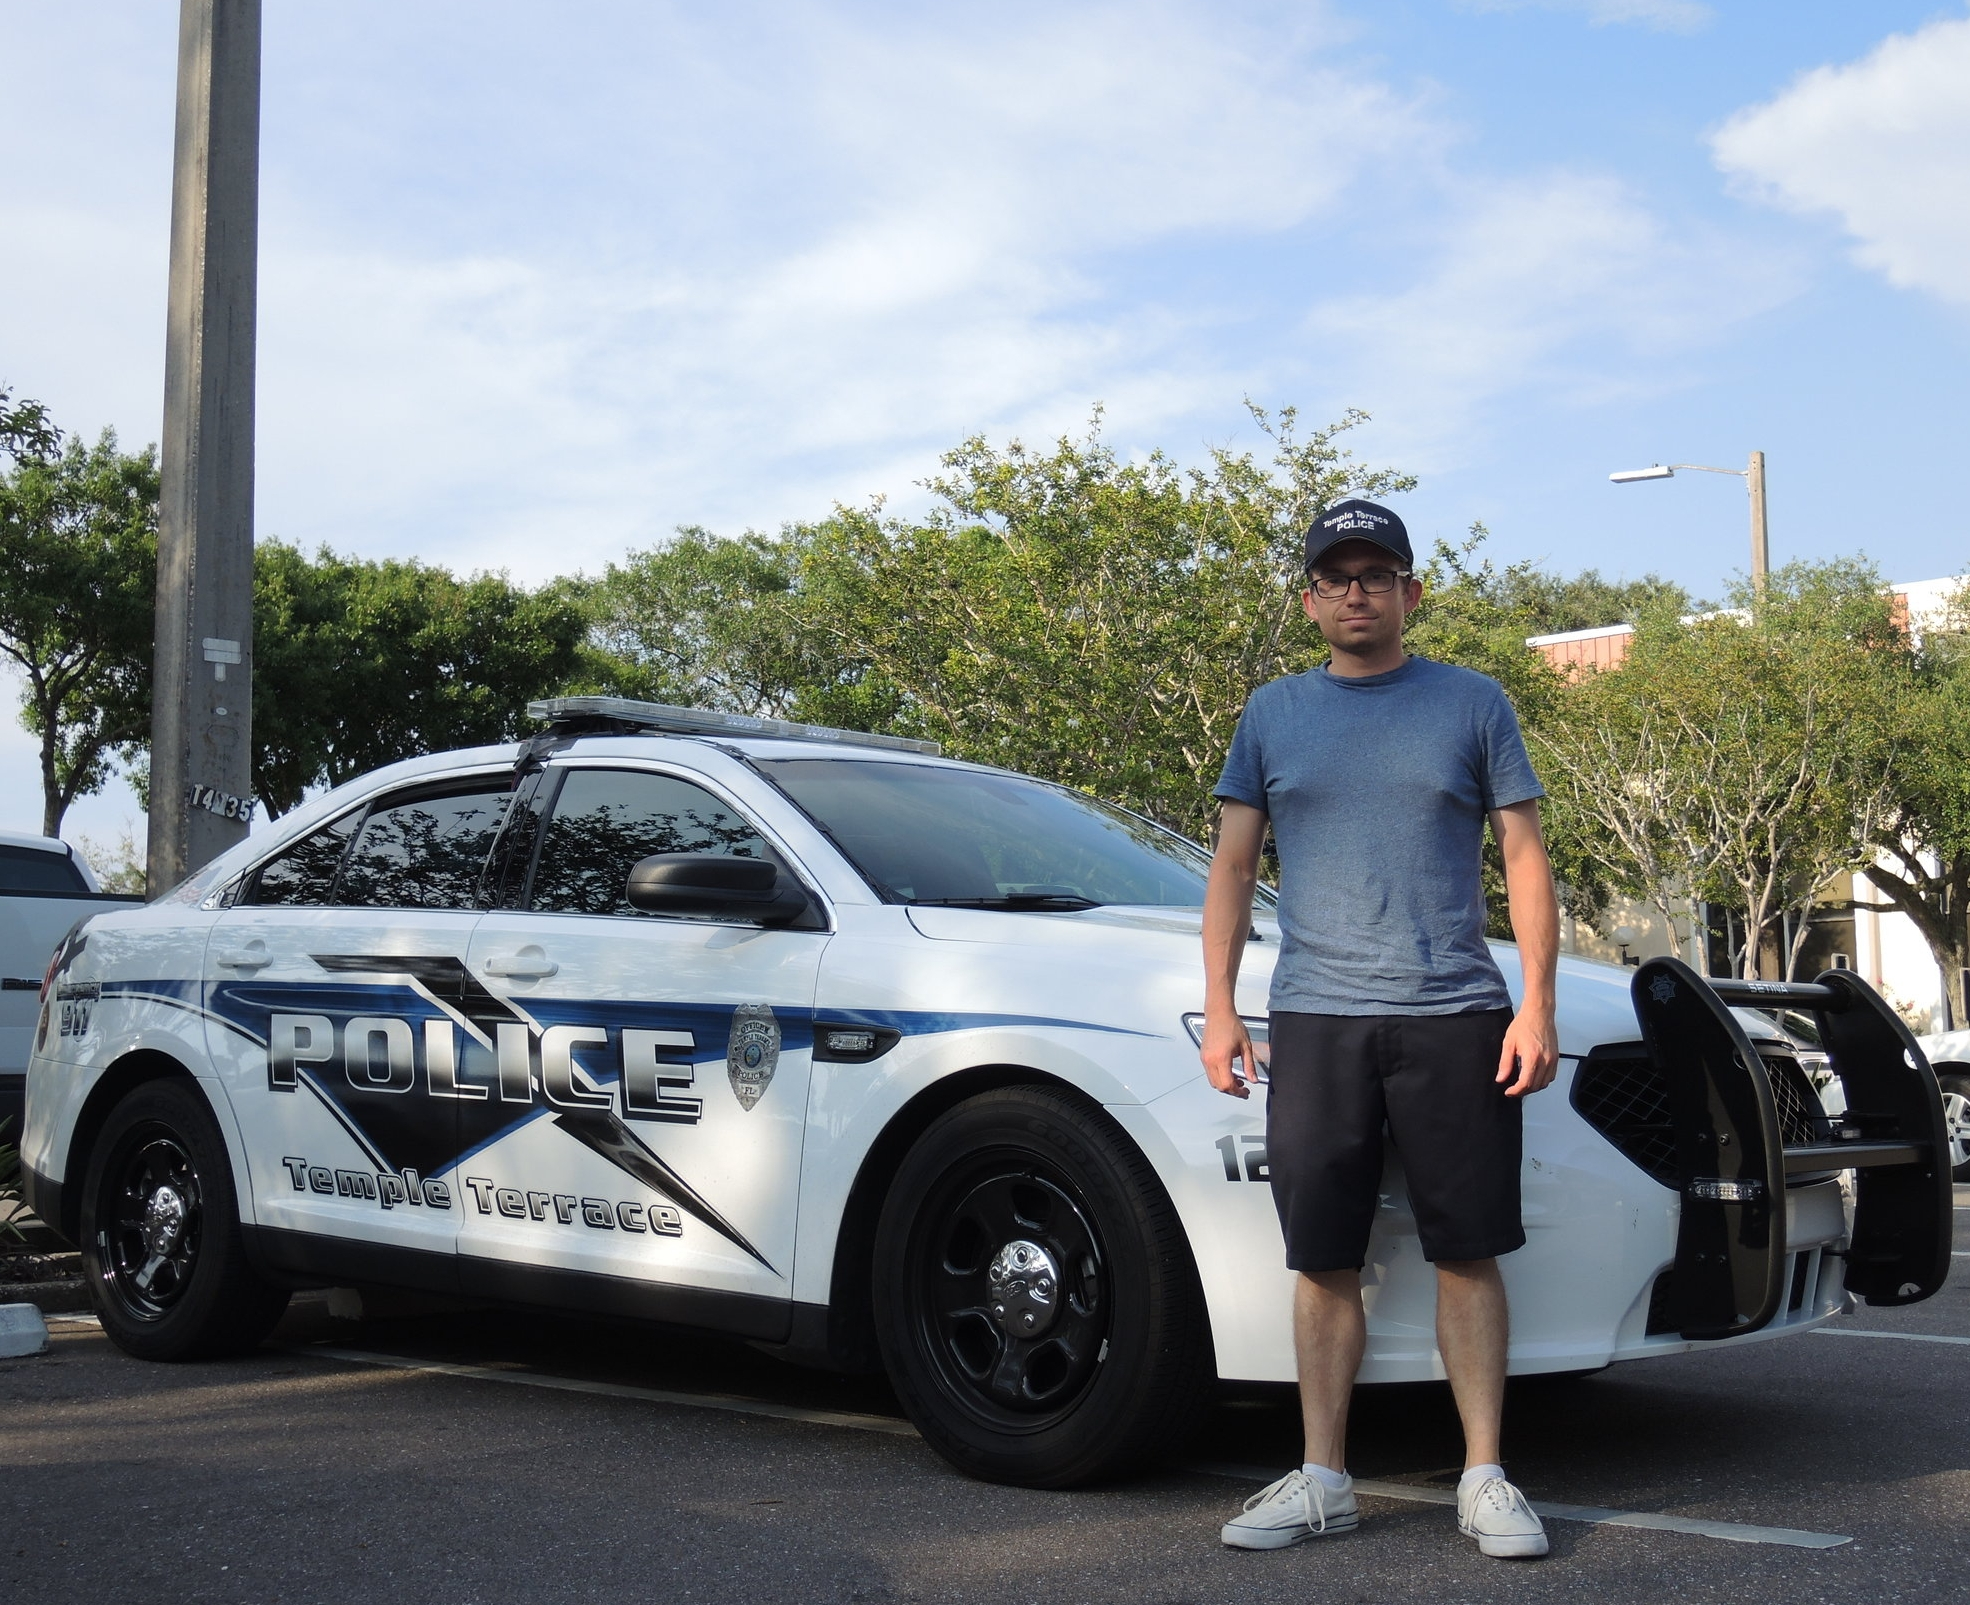 Officer Courtney & his Police Intercepter car